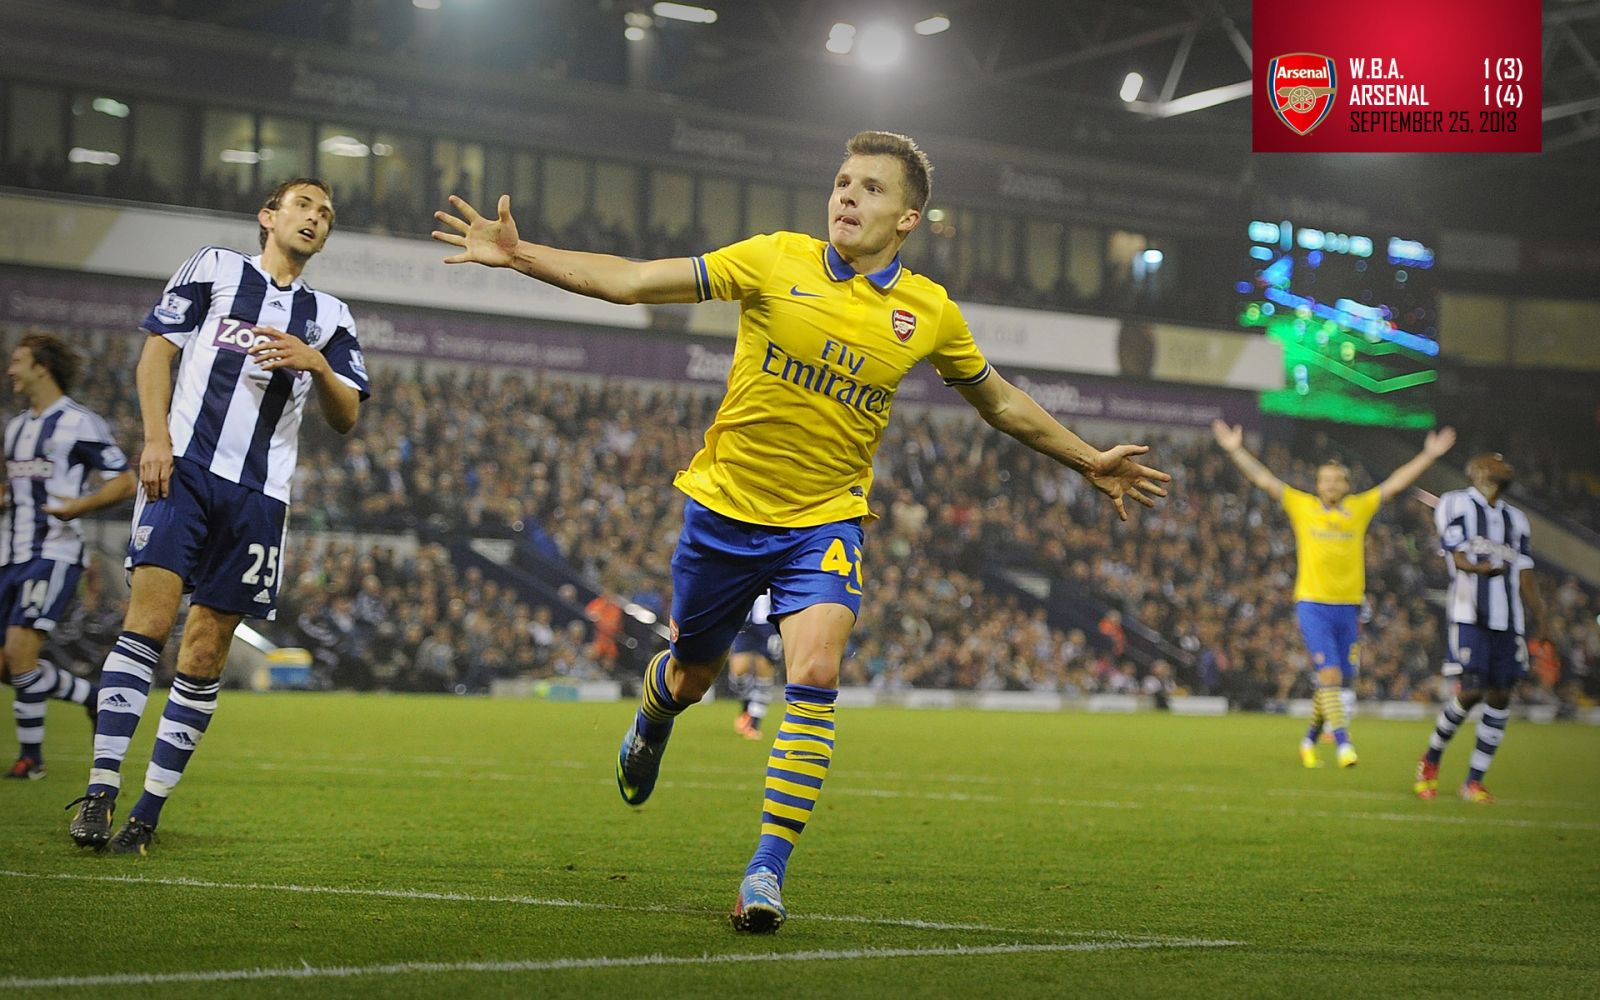 September 25, 2013 - West Bromwich Albion 3-4 Arsenal